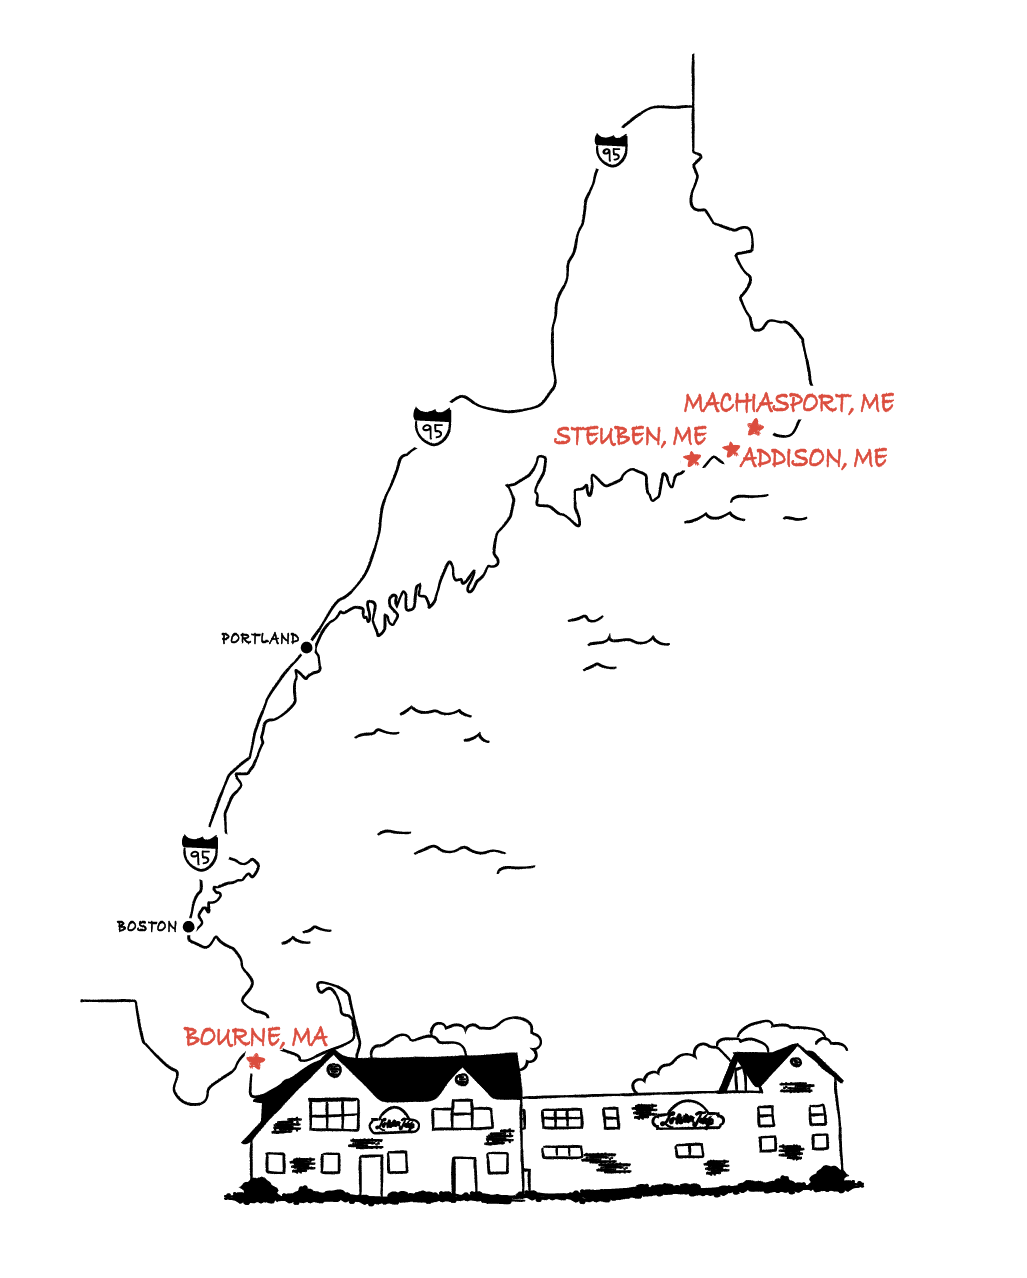 Illustration of Lobster Trap Co's facilities and operations